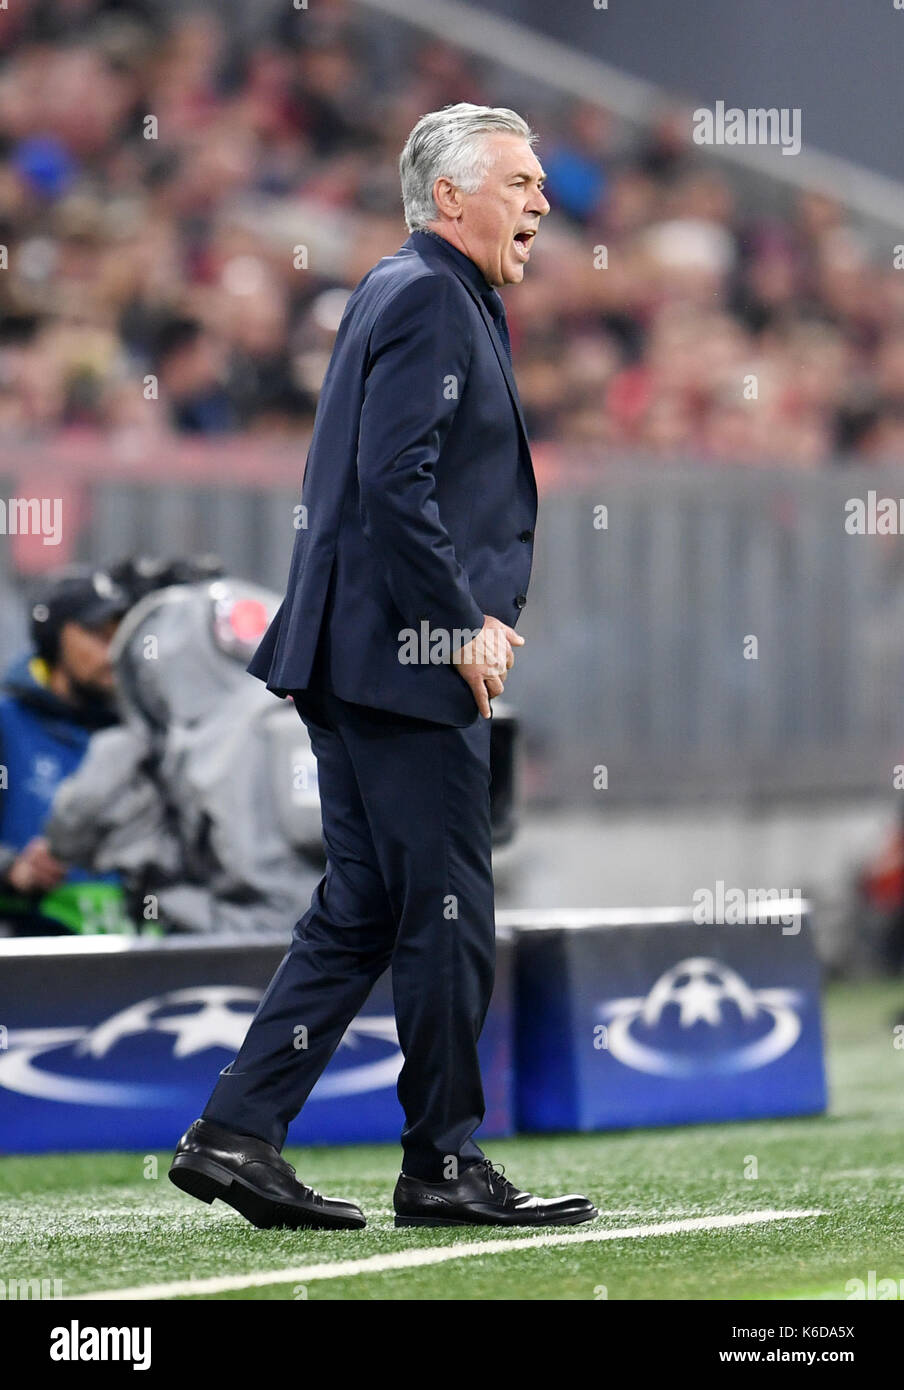 Munich's coach Carlo Ancelotti reacts during the Champions League Group B match between Bayern Munich's and RSC Anderlecht at the Allianz Arena in Munich, Germany, 12 September 2017. Photo: Tobias Hase/dpa - Stock Image